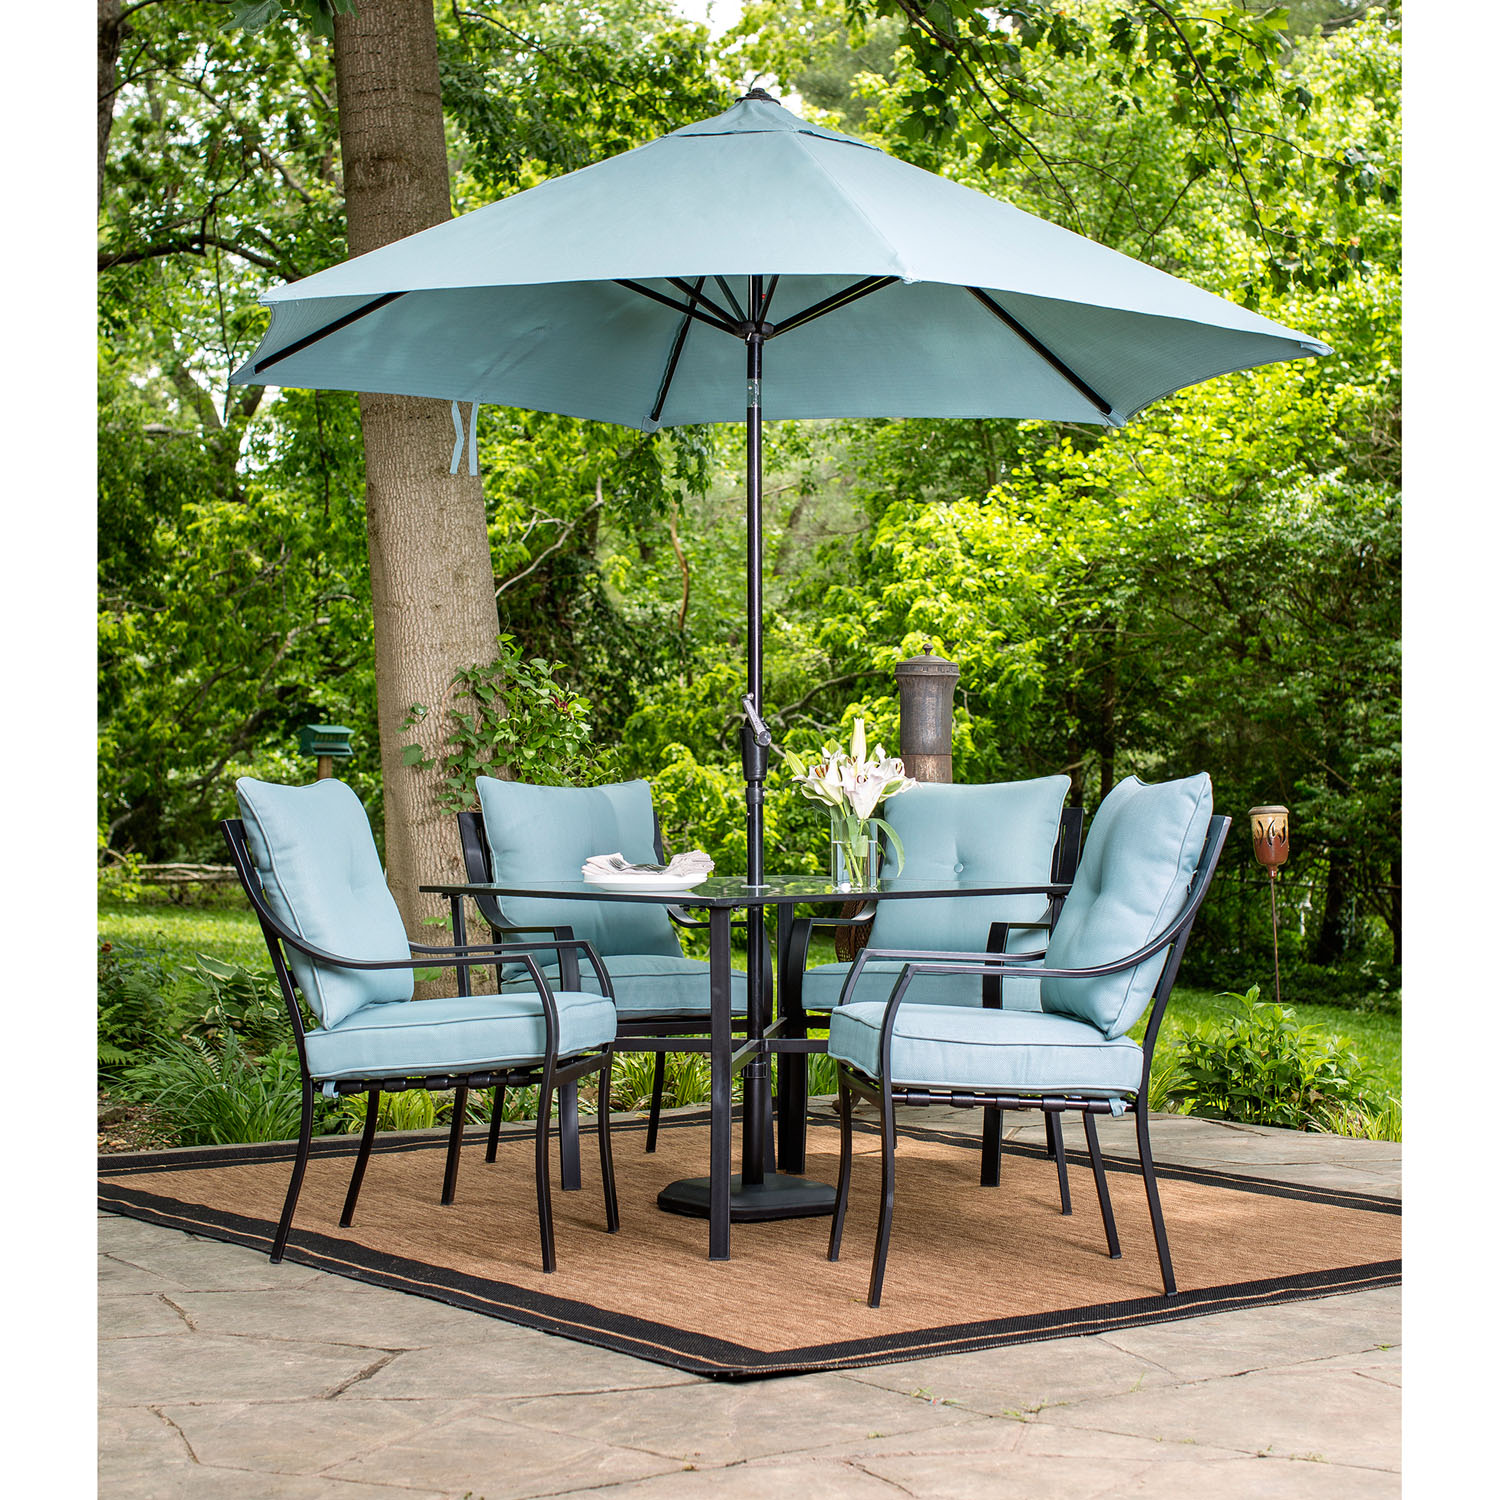 Hanover Lavallette 5-Piece Outdoor Dining Set and Table Umbrella with Stand